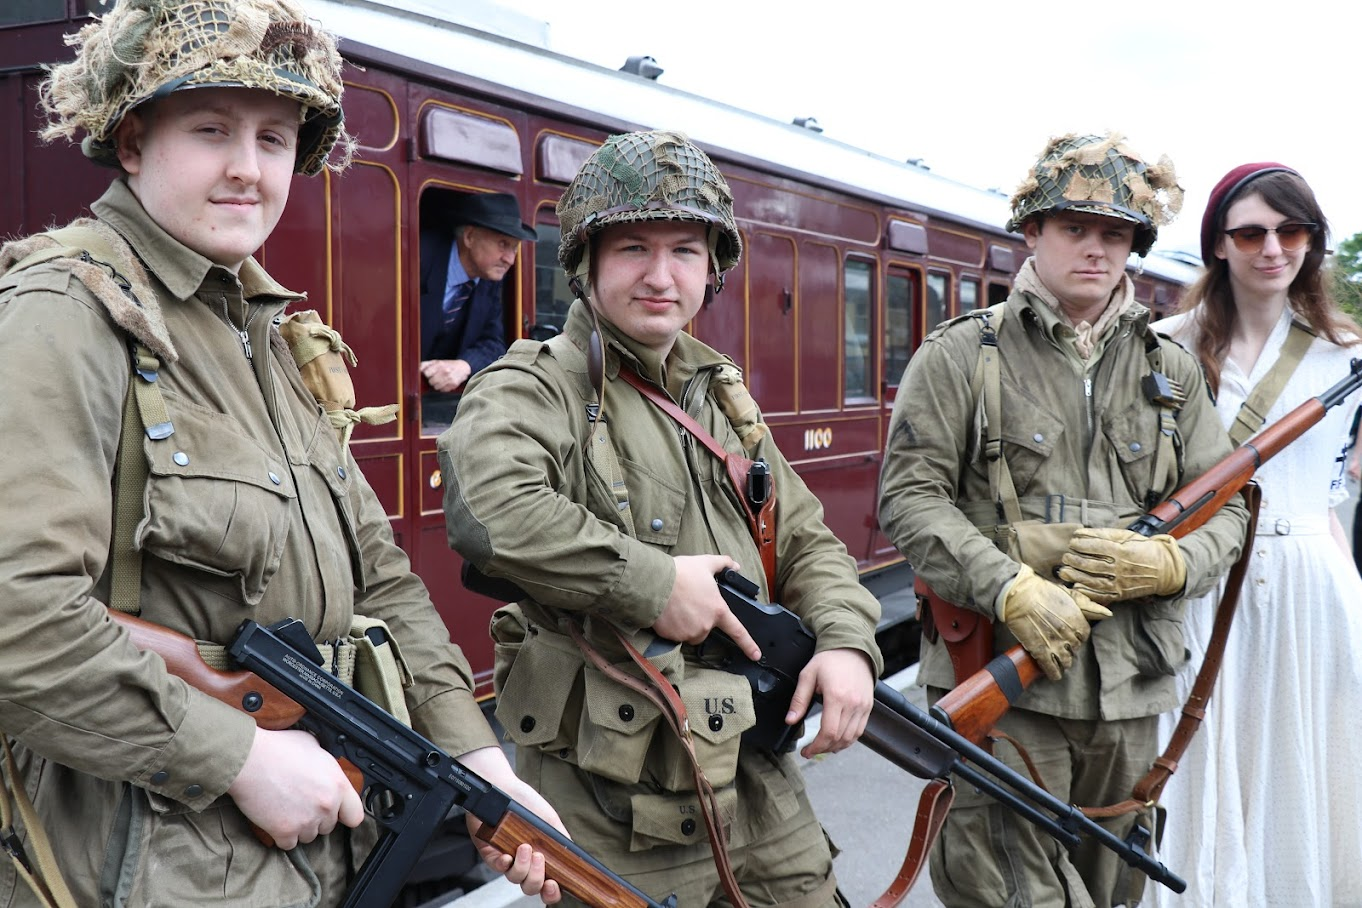 1940s Weekend at the Kent & East Sussex Railway 2017